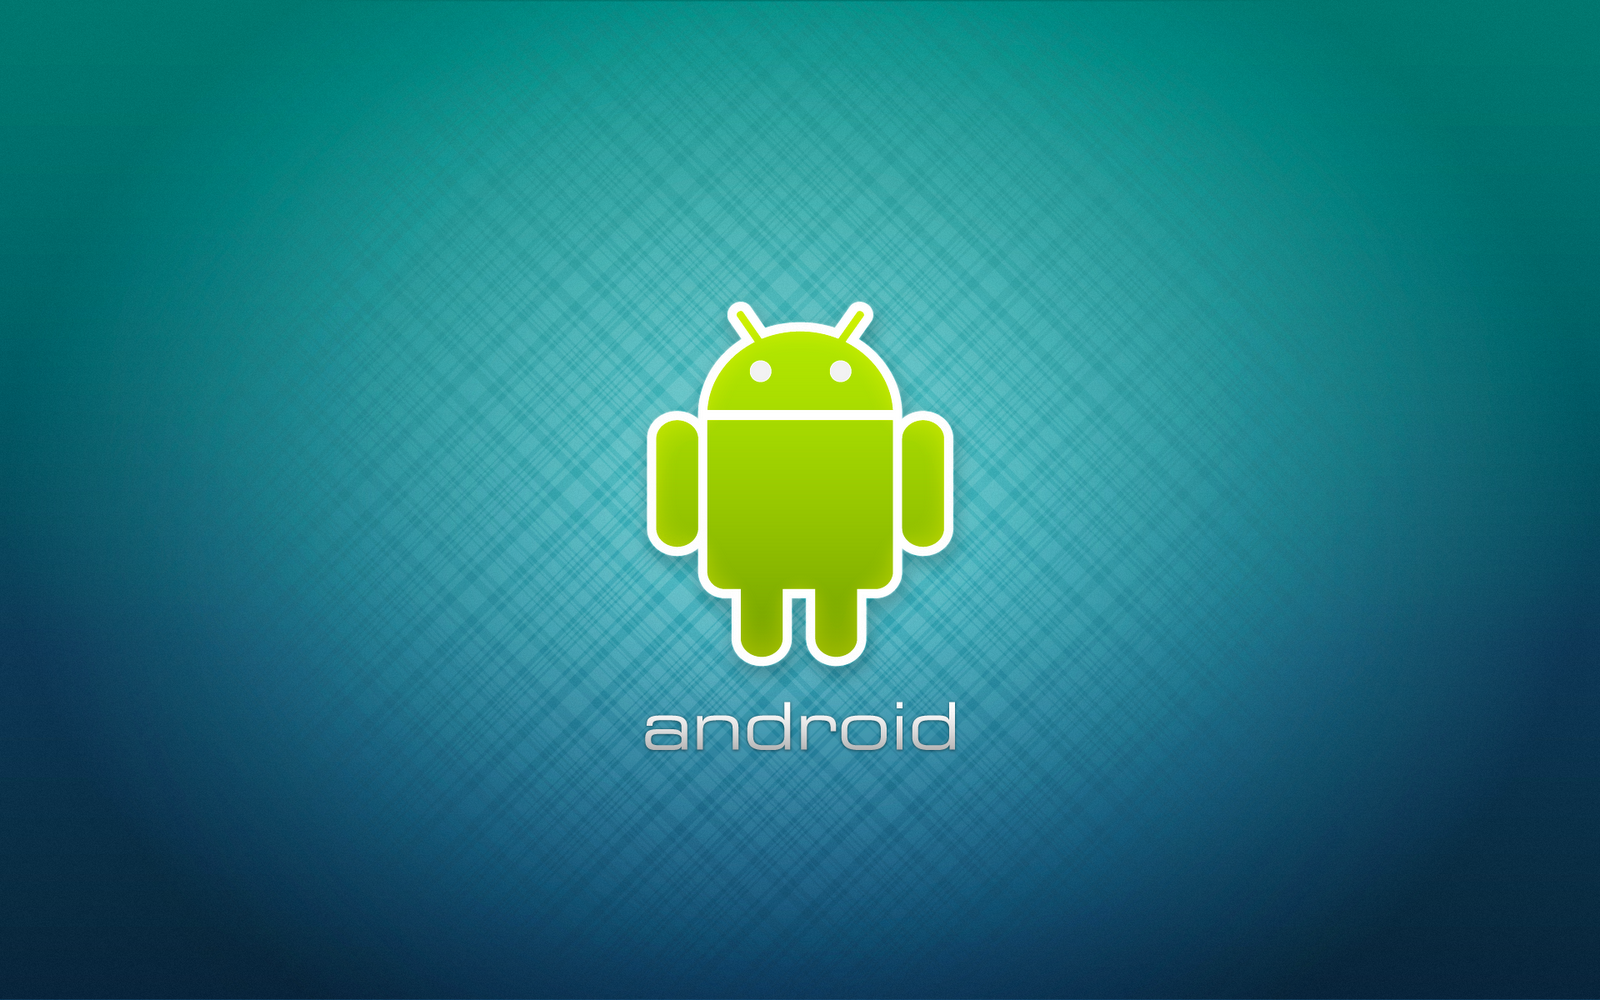 Android tablet wallpaper hd Smartphone Wallpaper 6507 High 1600x1000